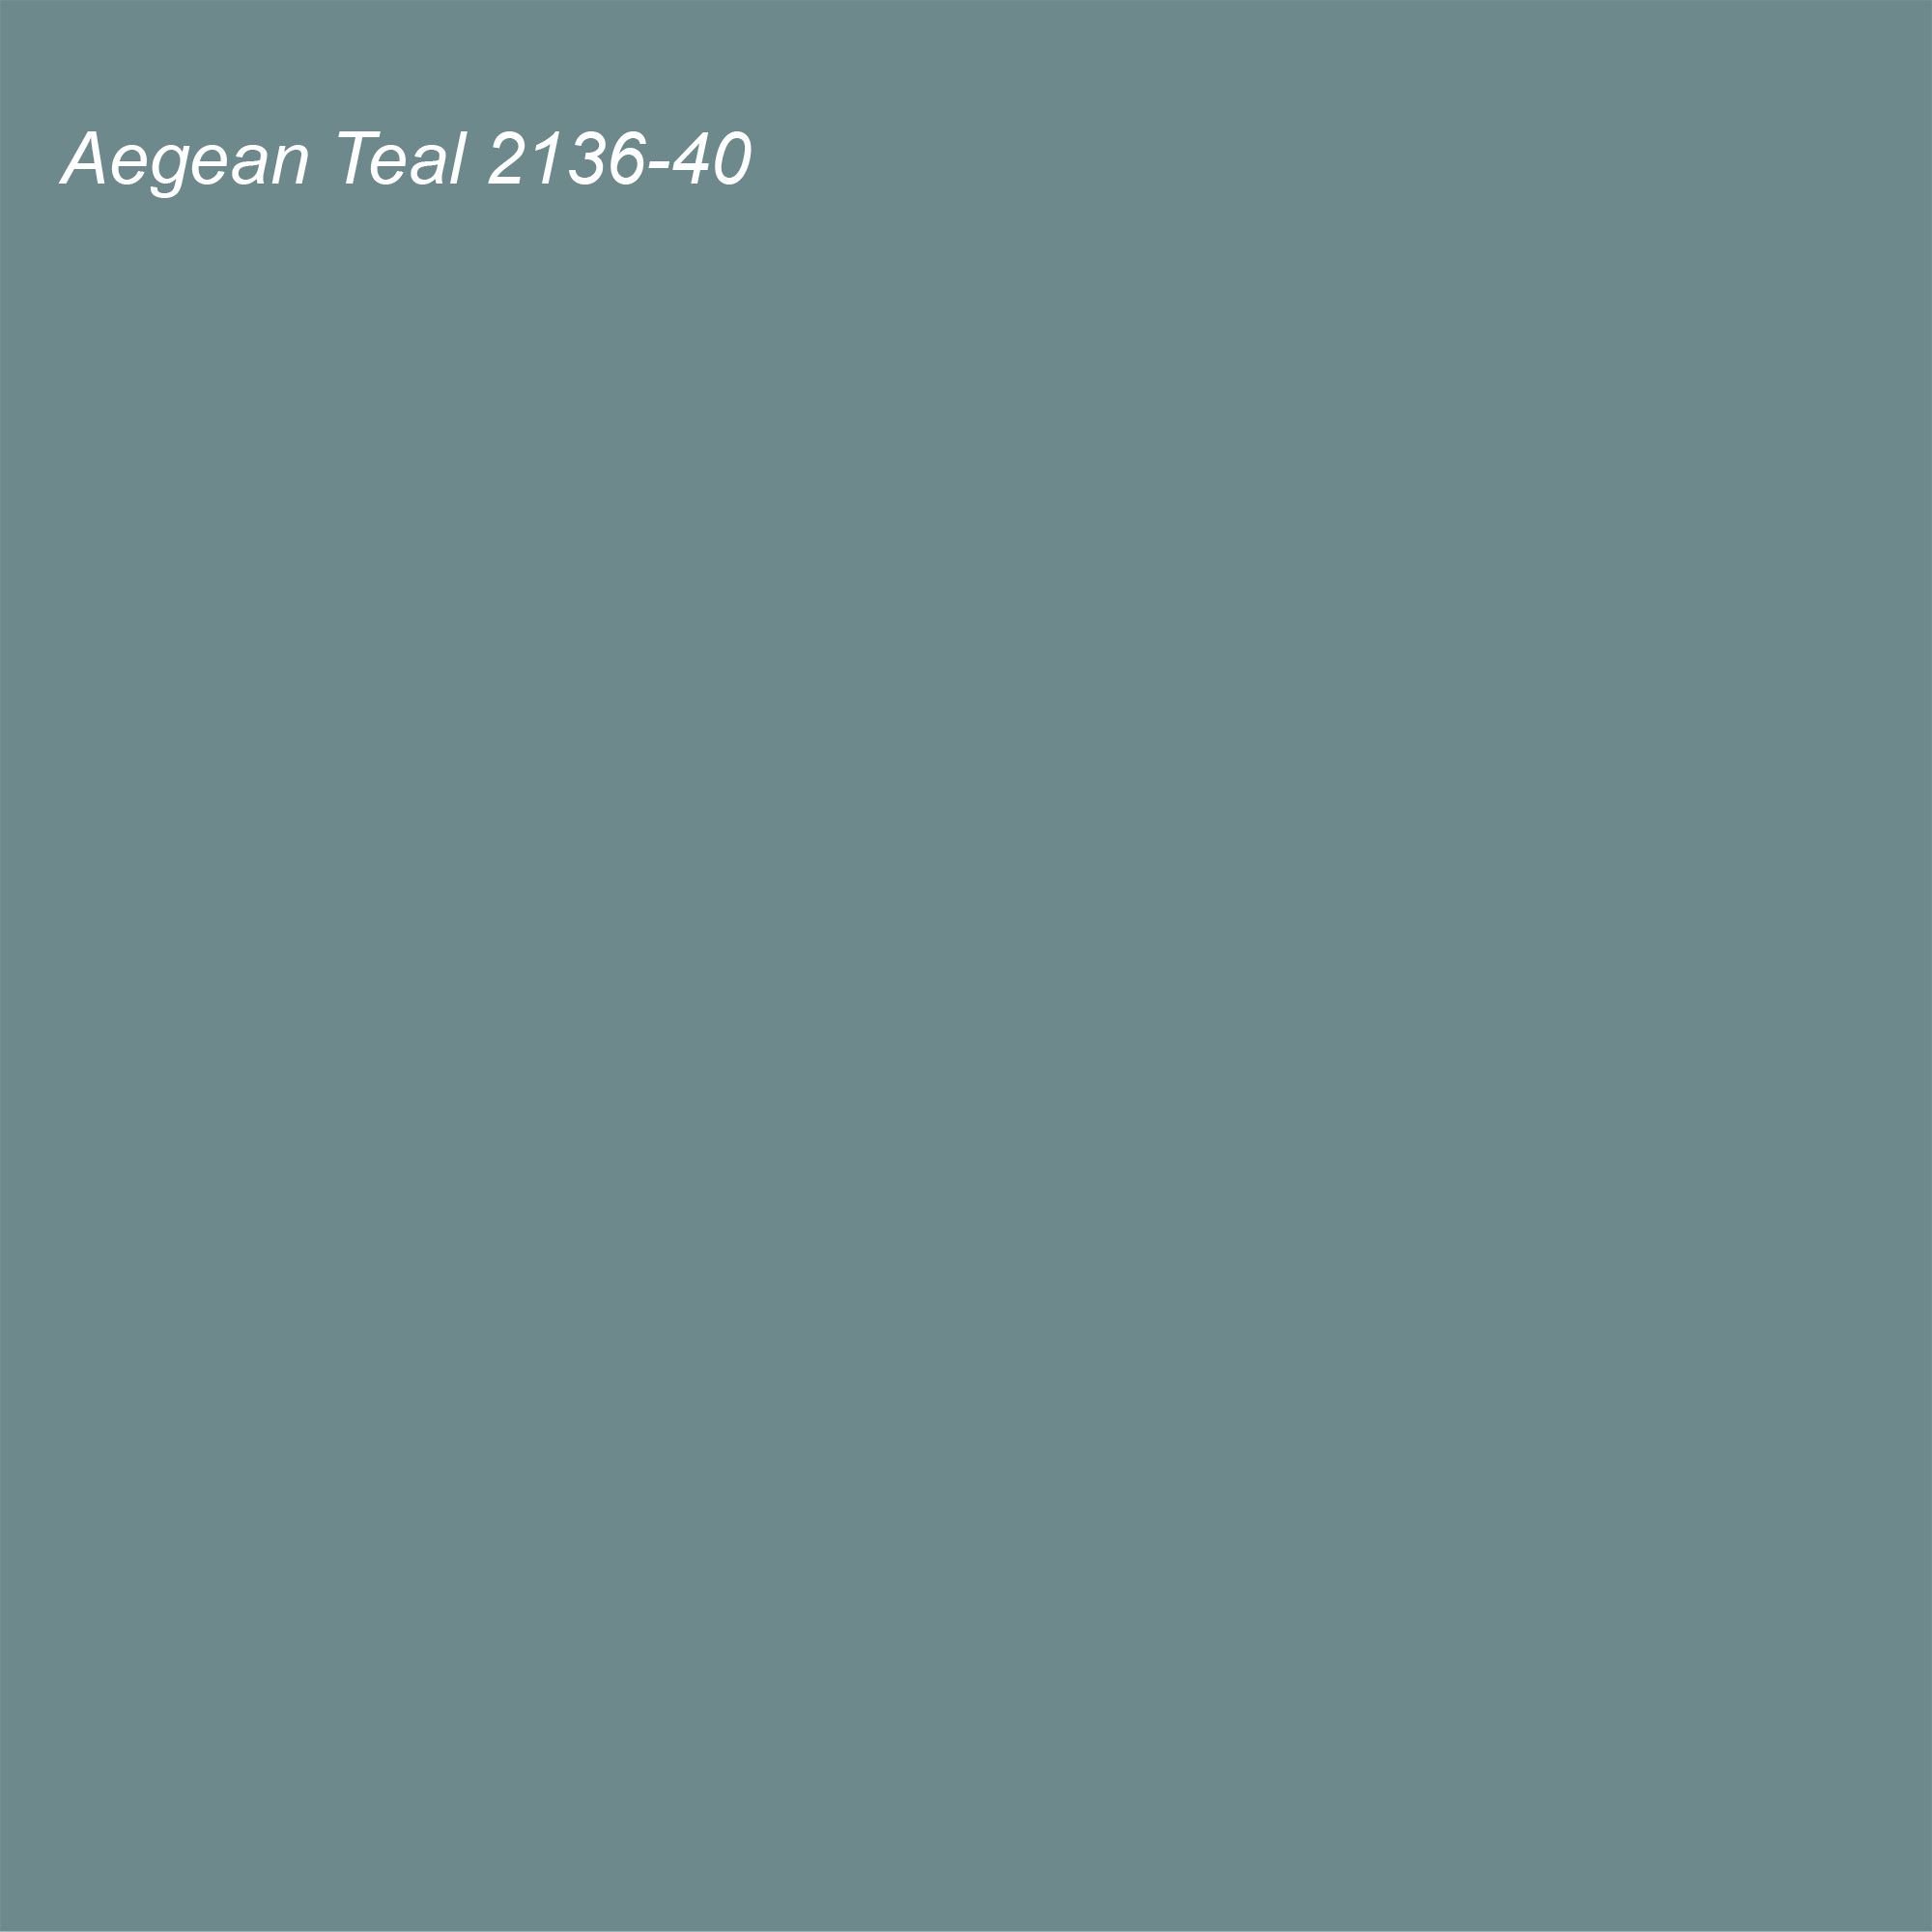 Benjamin Moore 2021 Color of the Year Aegean Teal 2136-40 Swatch